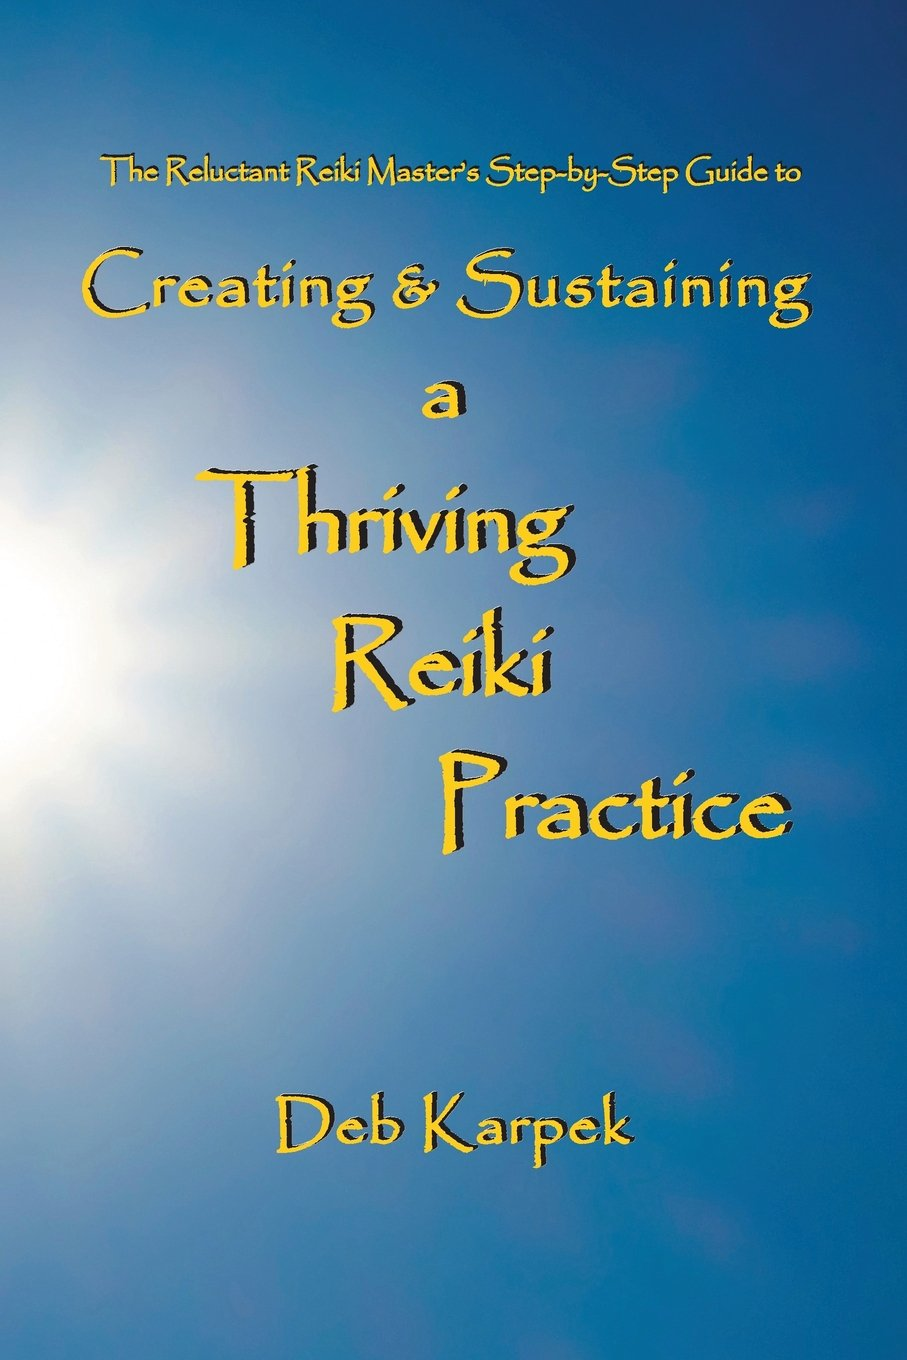 The Reluctant Reiki Master's Step-by-Step Guide to Creating and Sustaining a Thriving Reiki Practice